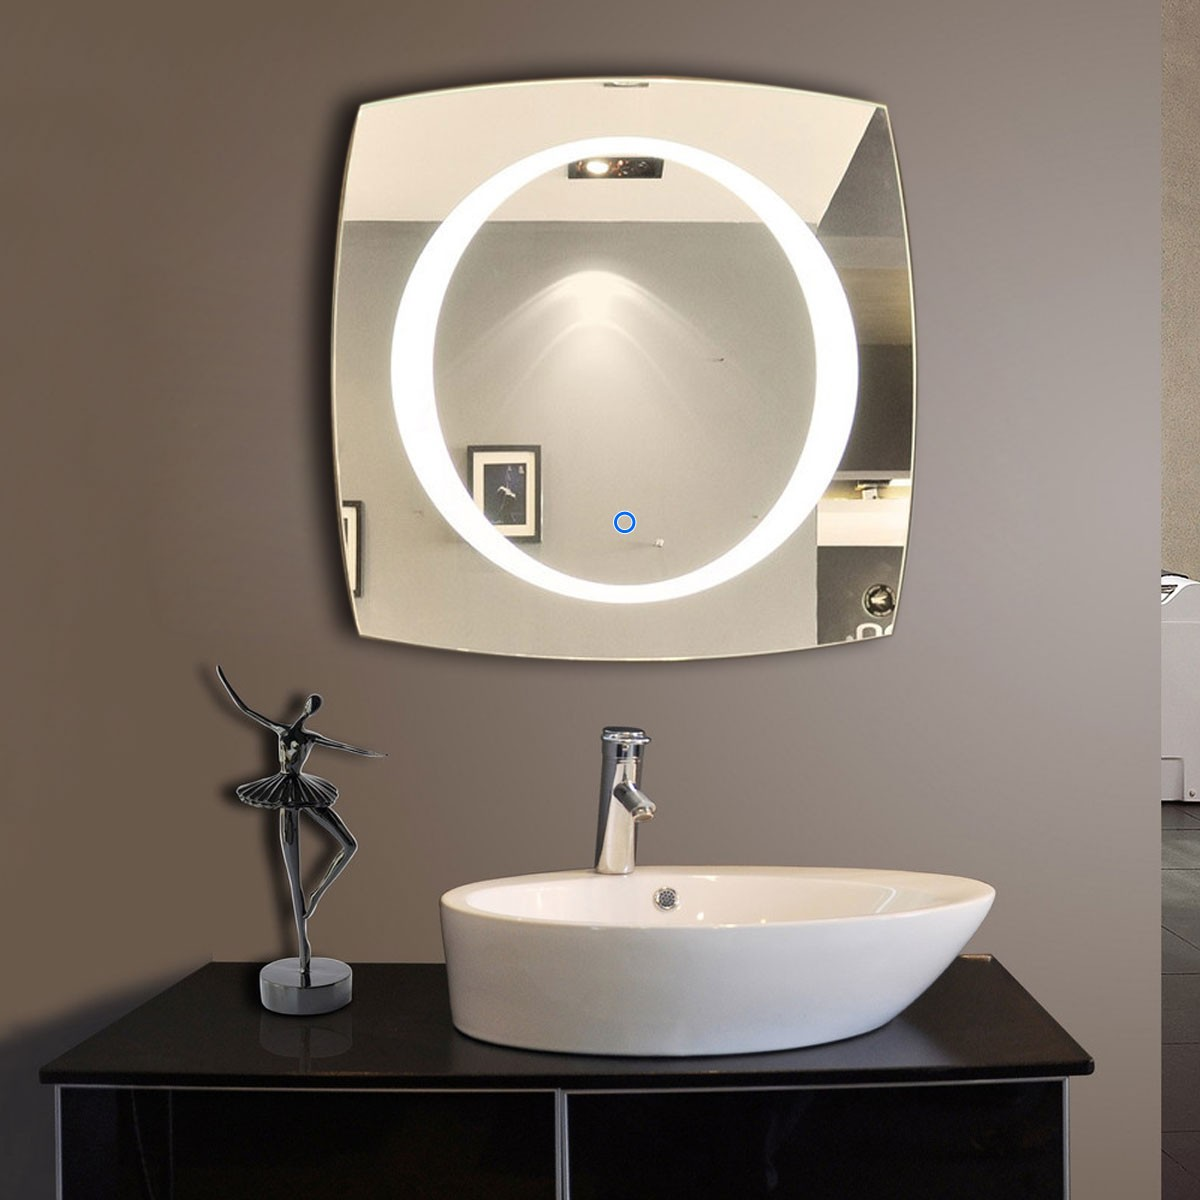 28 x 28 In and Vertical LED Bathroom Mirror with Touch Button (DK-OD-N006-A)